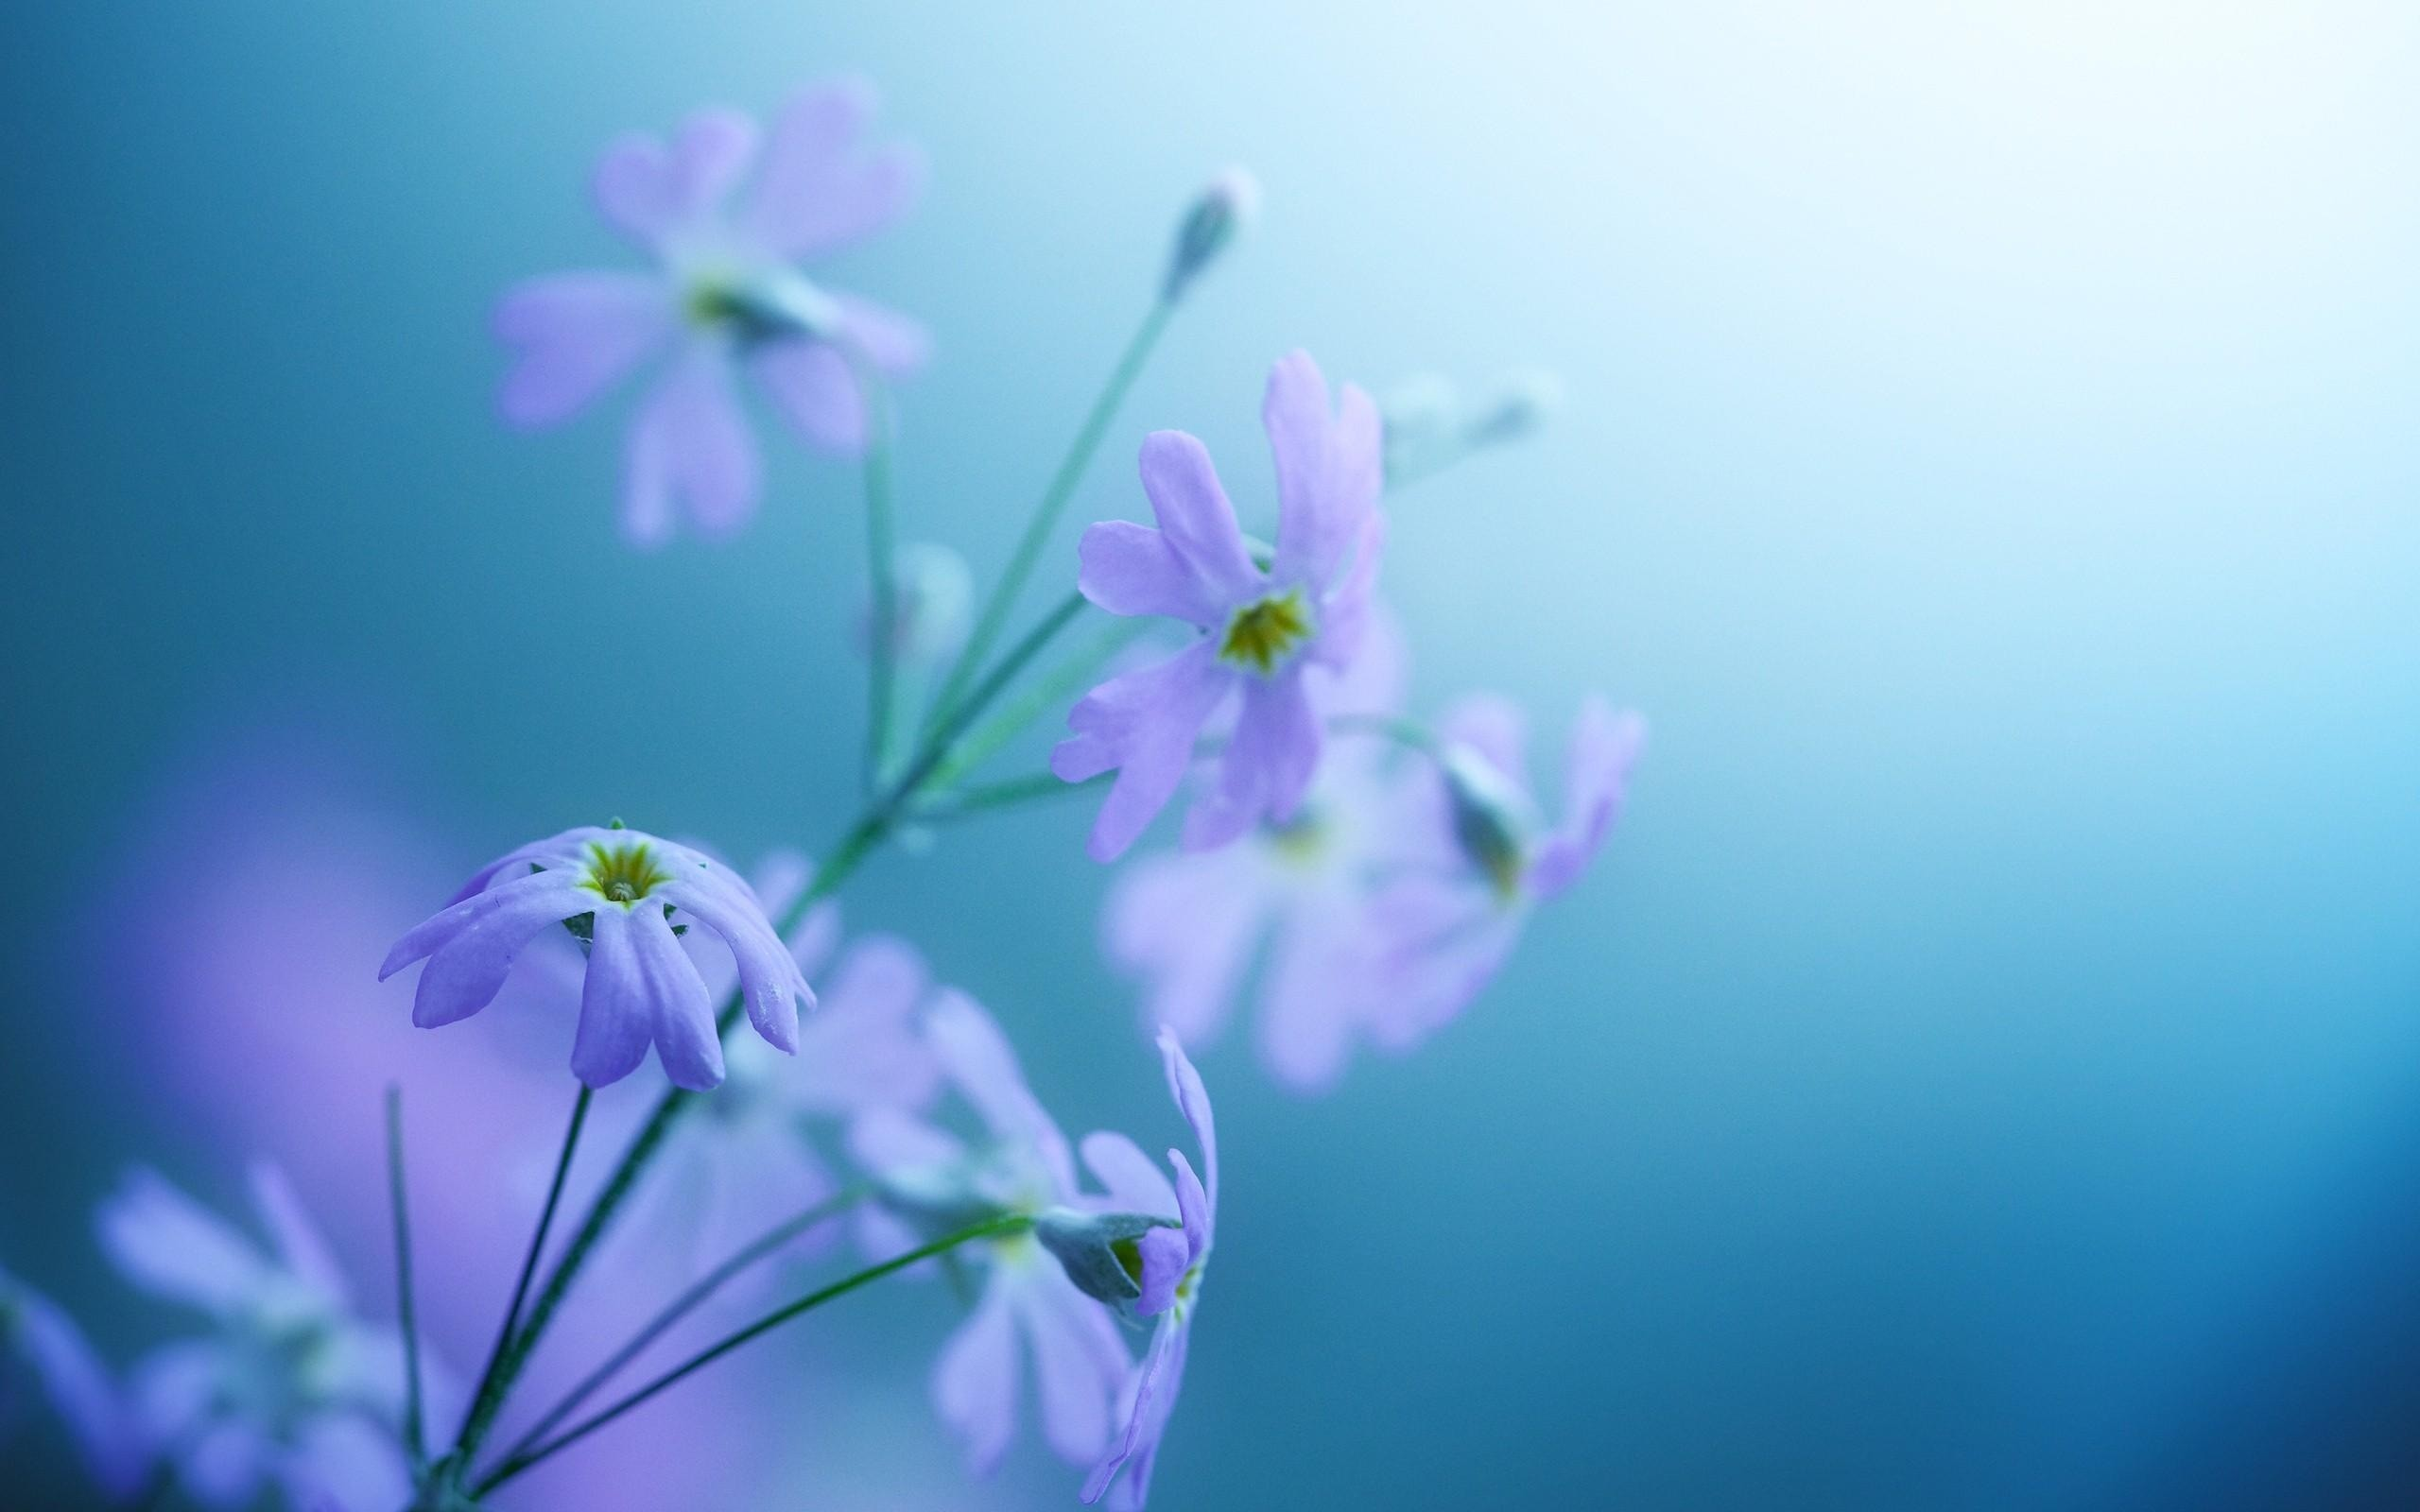 Beautiful Flower Wallpaper For Computer Image collections